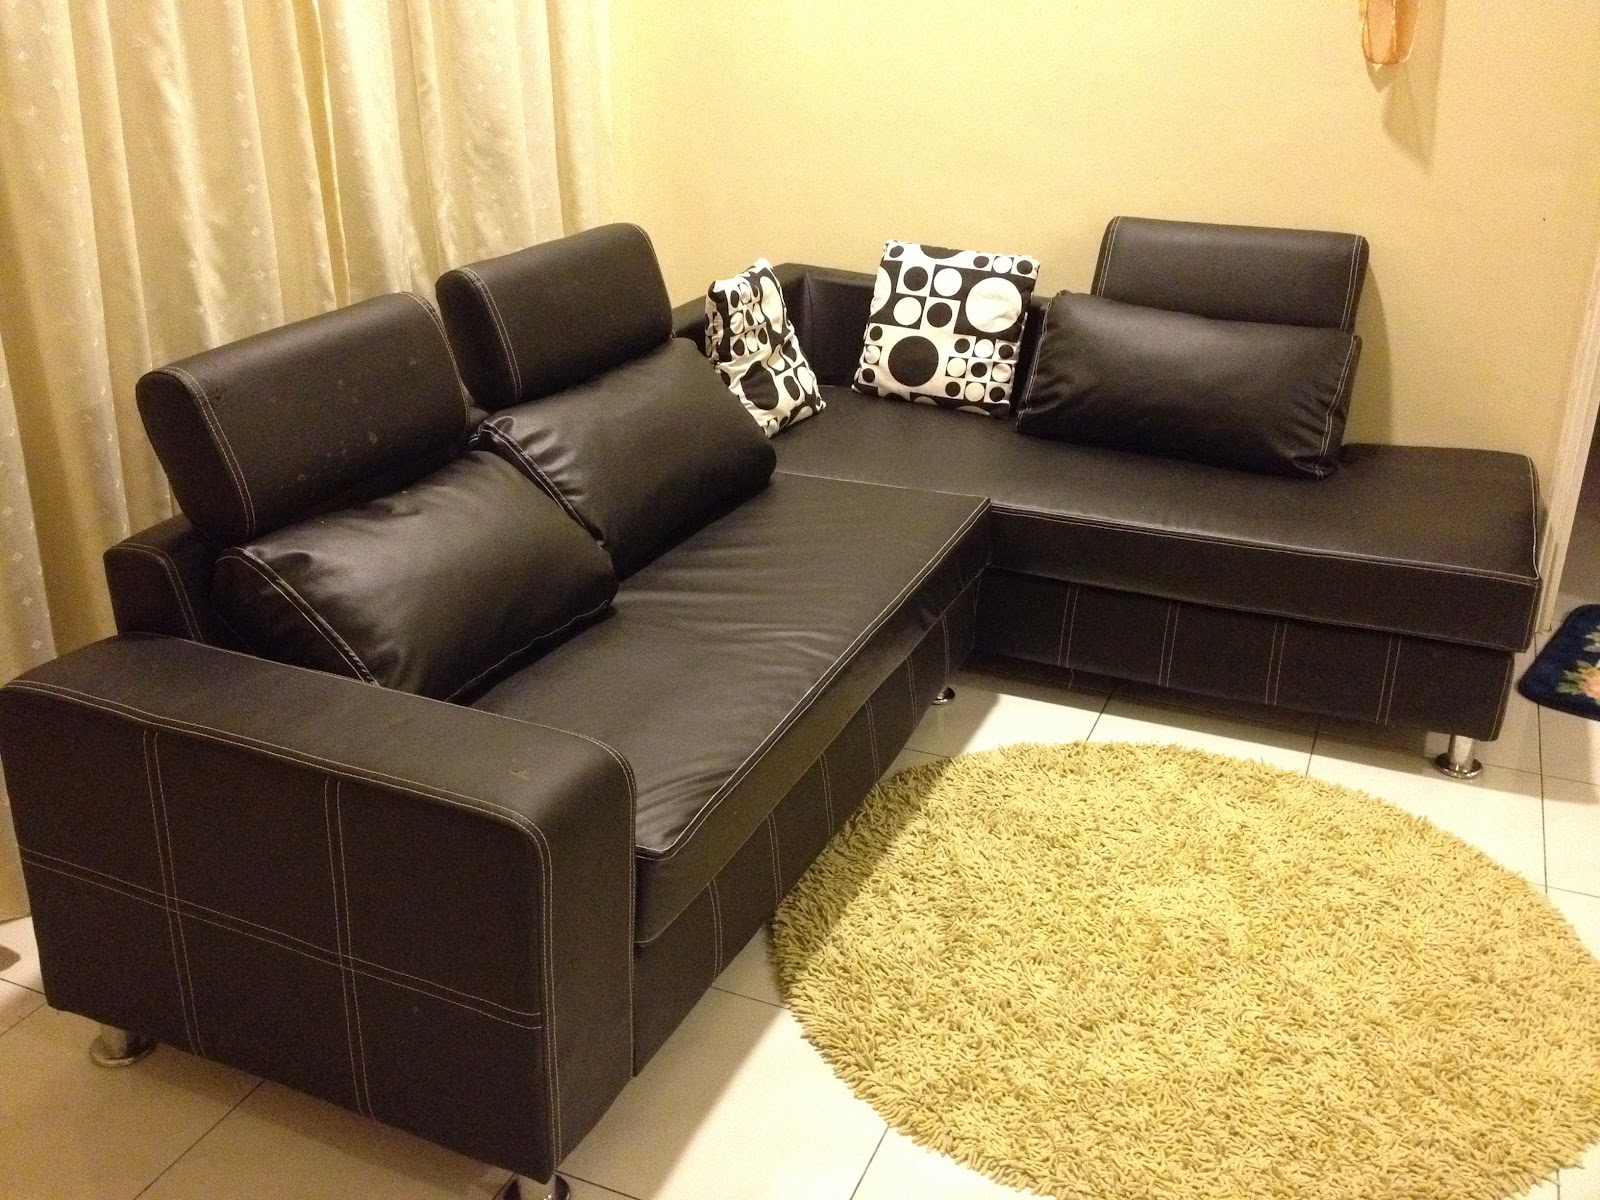 Used L Shape Leather Sofa For Sale Sold Out April 2012 Images Frompo